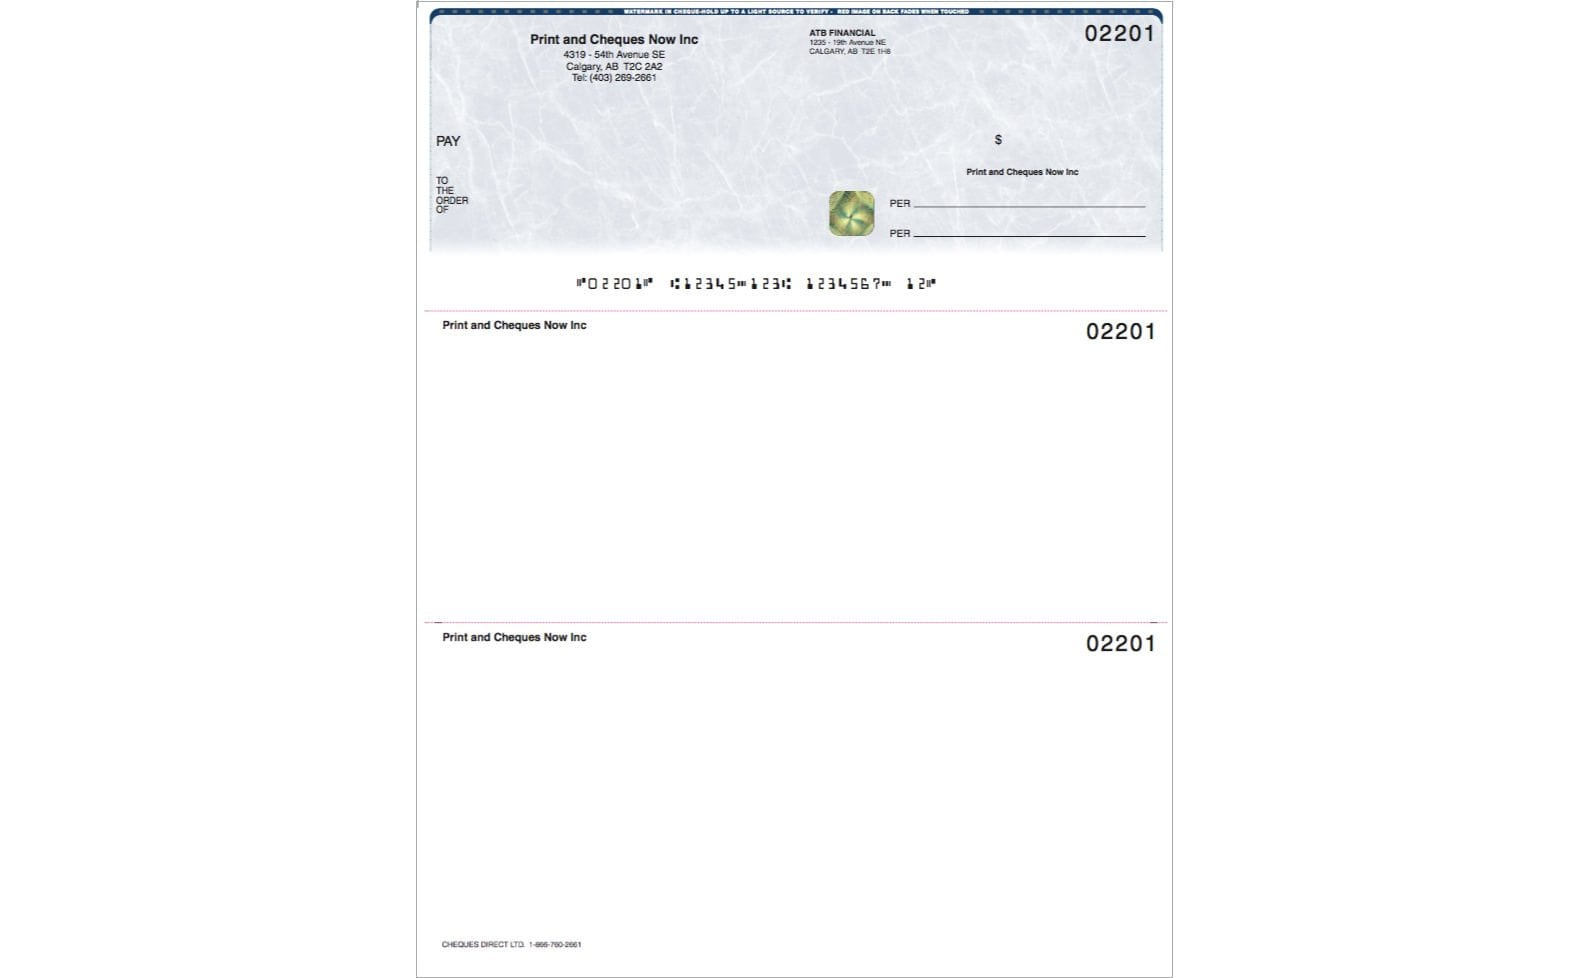 Computer & Laser Cheques - Save $113